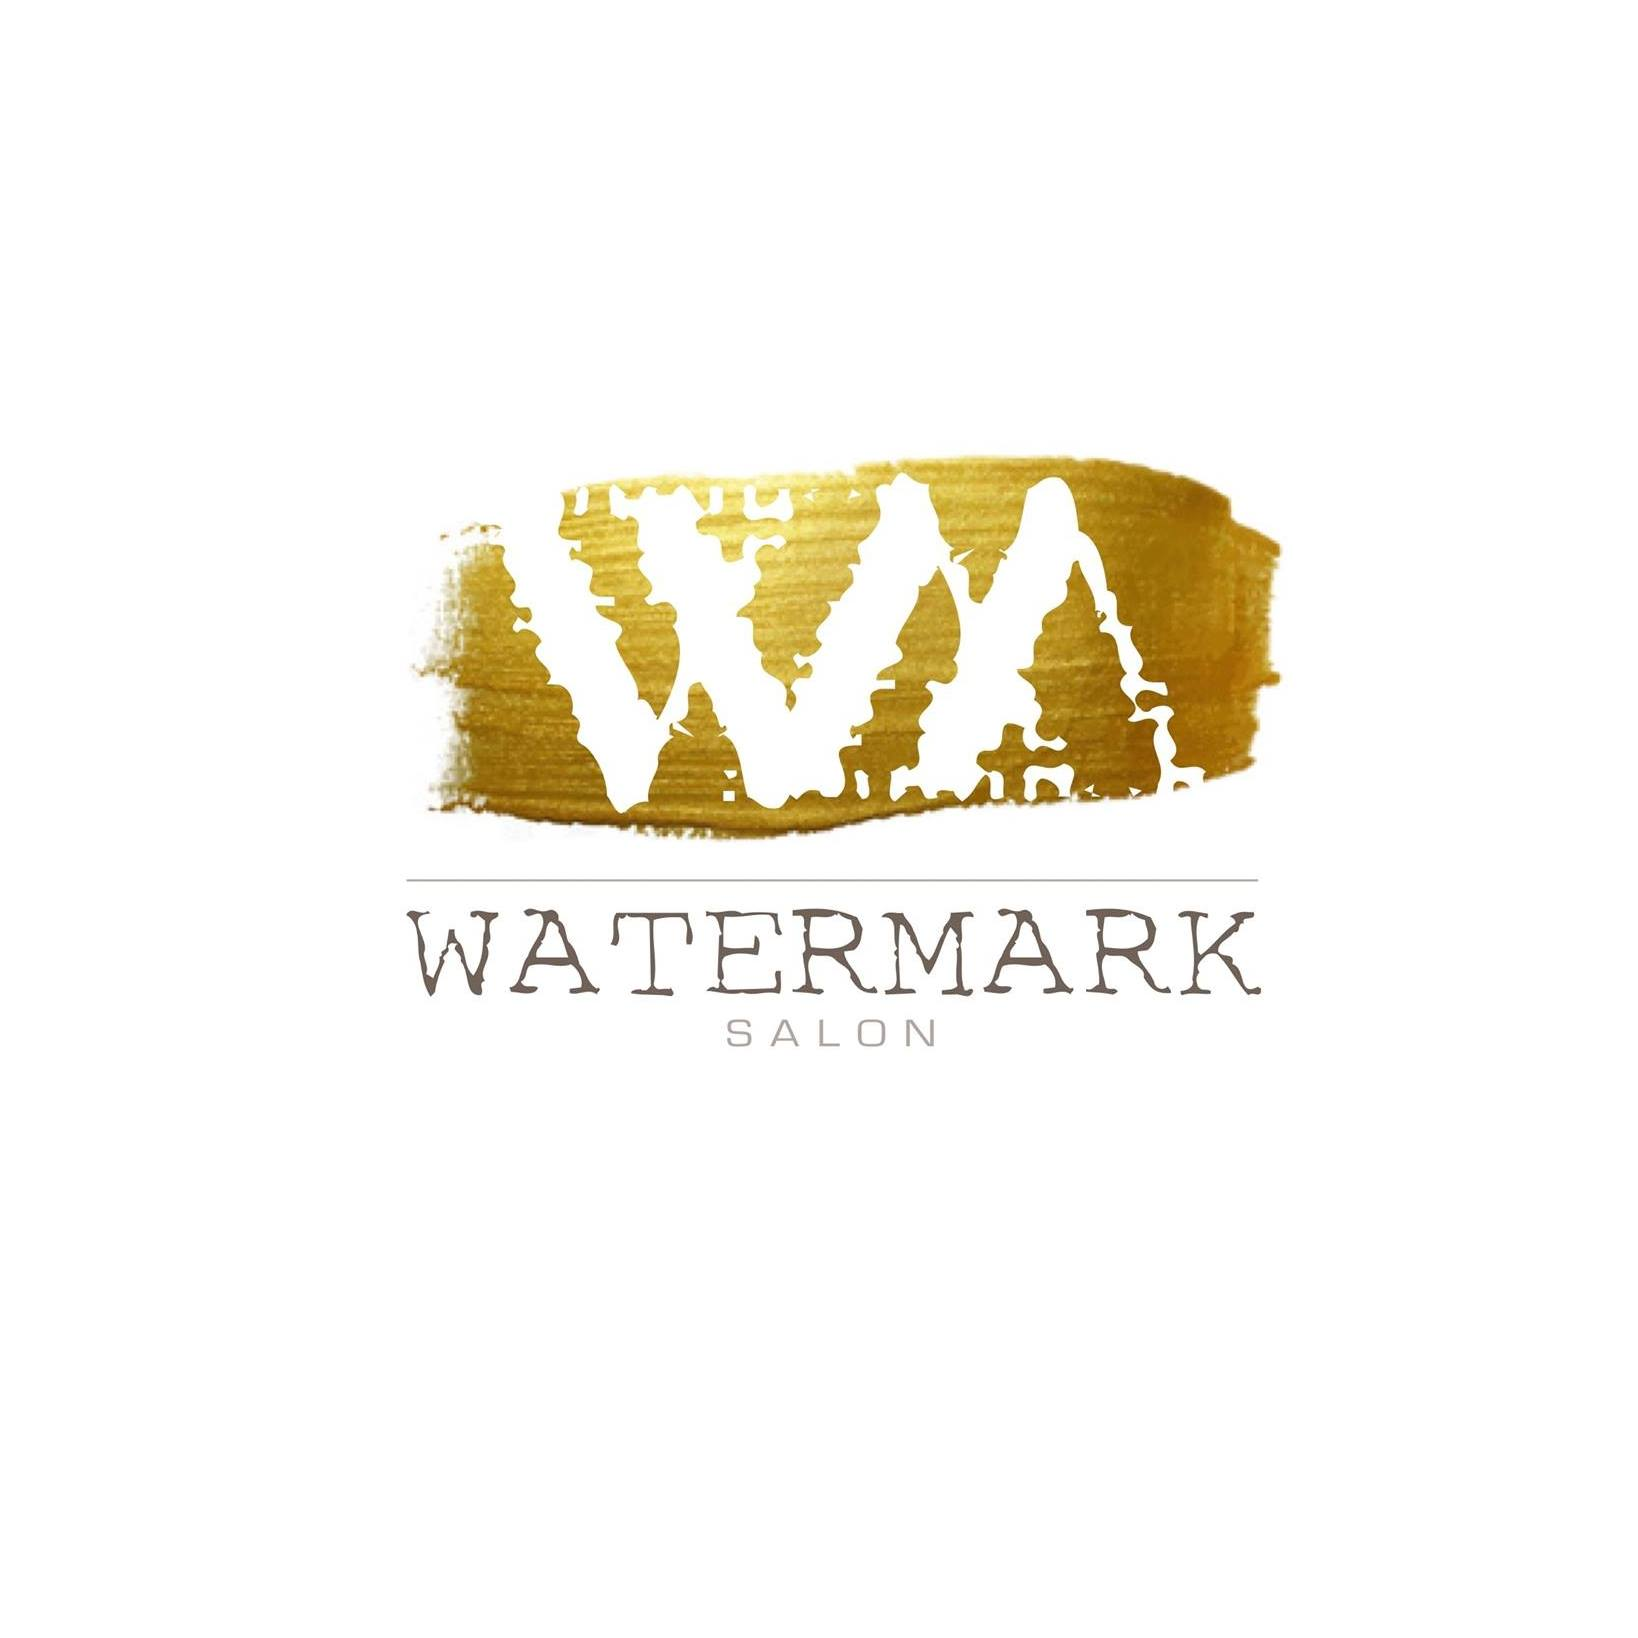 Watermark Salon Logo